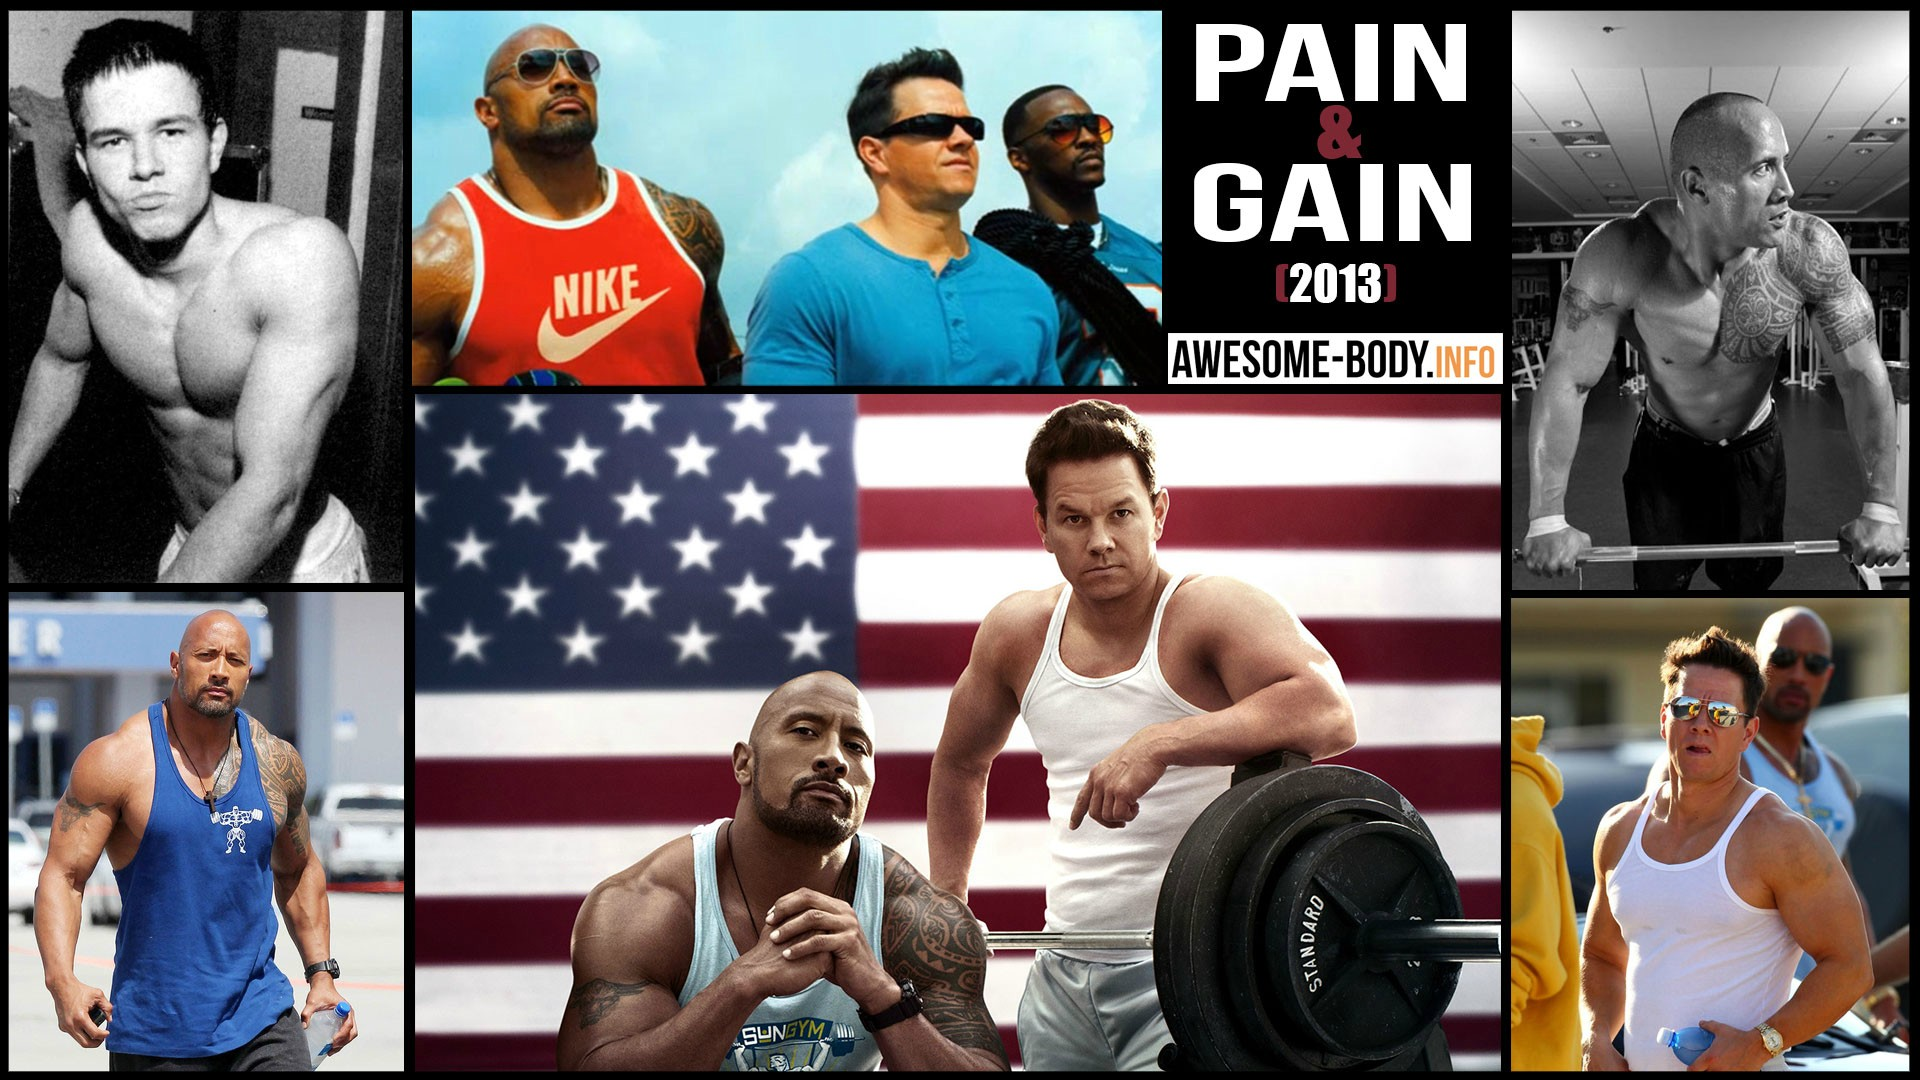 Pain And Gain Funny Quotes. QuotesGram